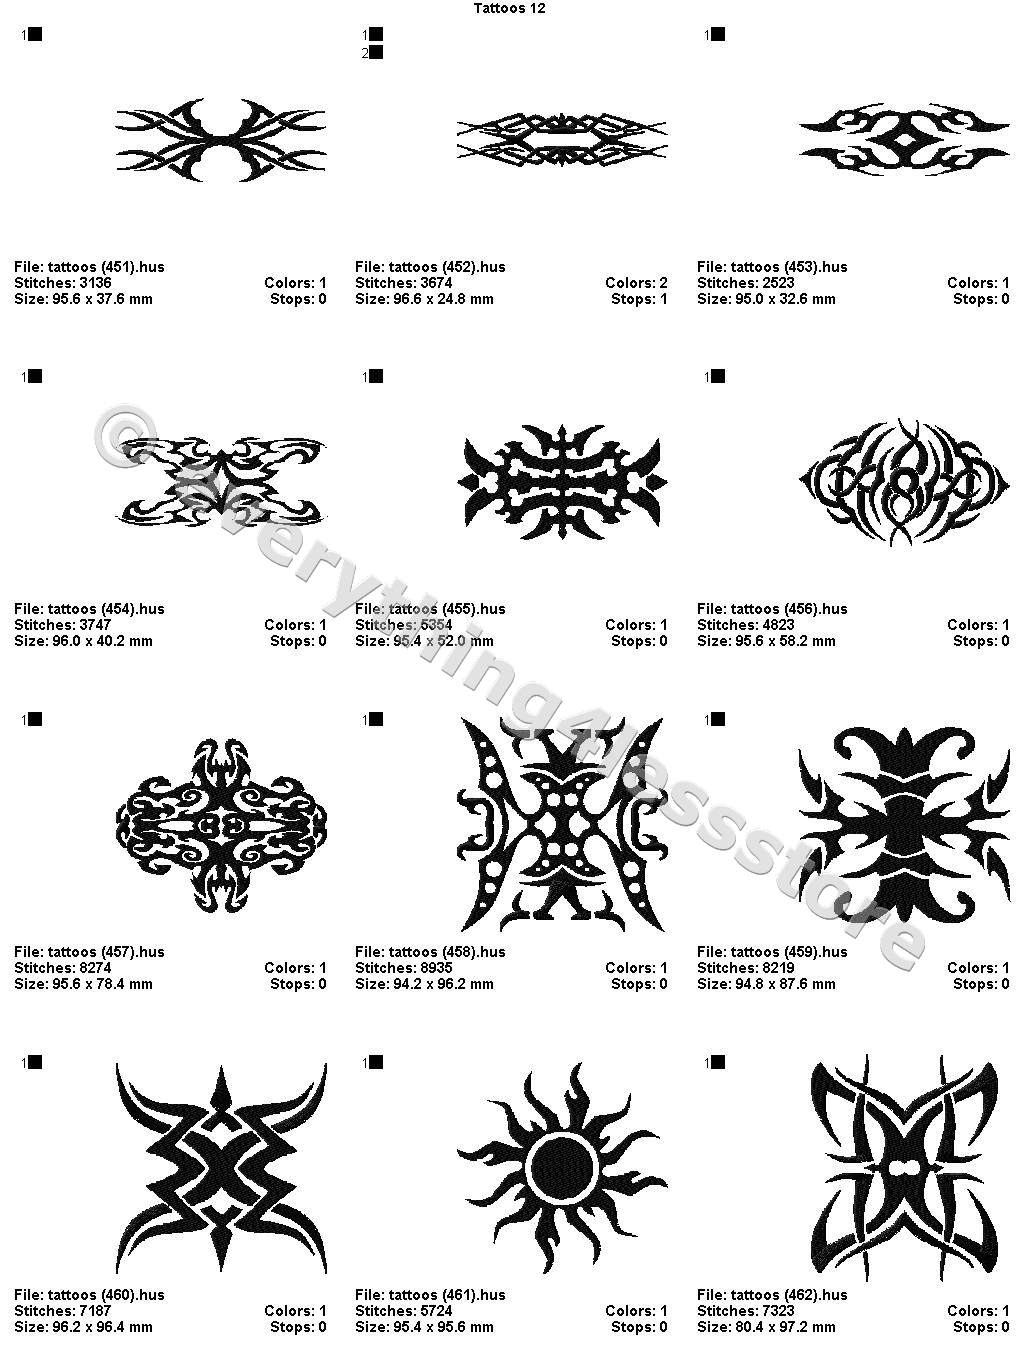 48 Tattoos 4X4 Volume 12 Mega Embroidery Designs On Cd Ebay Ideas And Designs